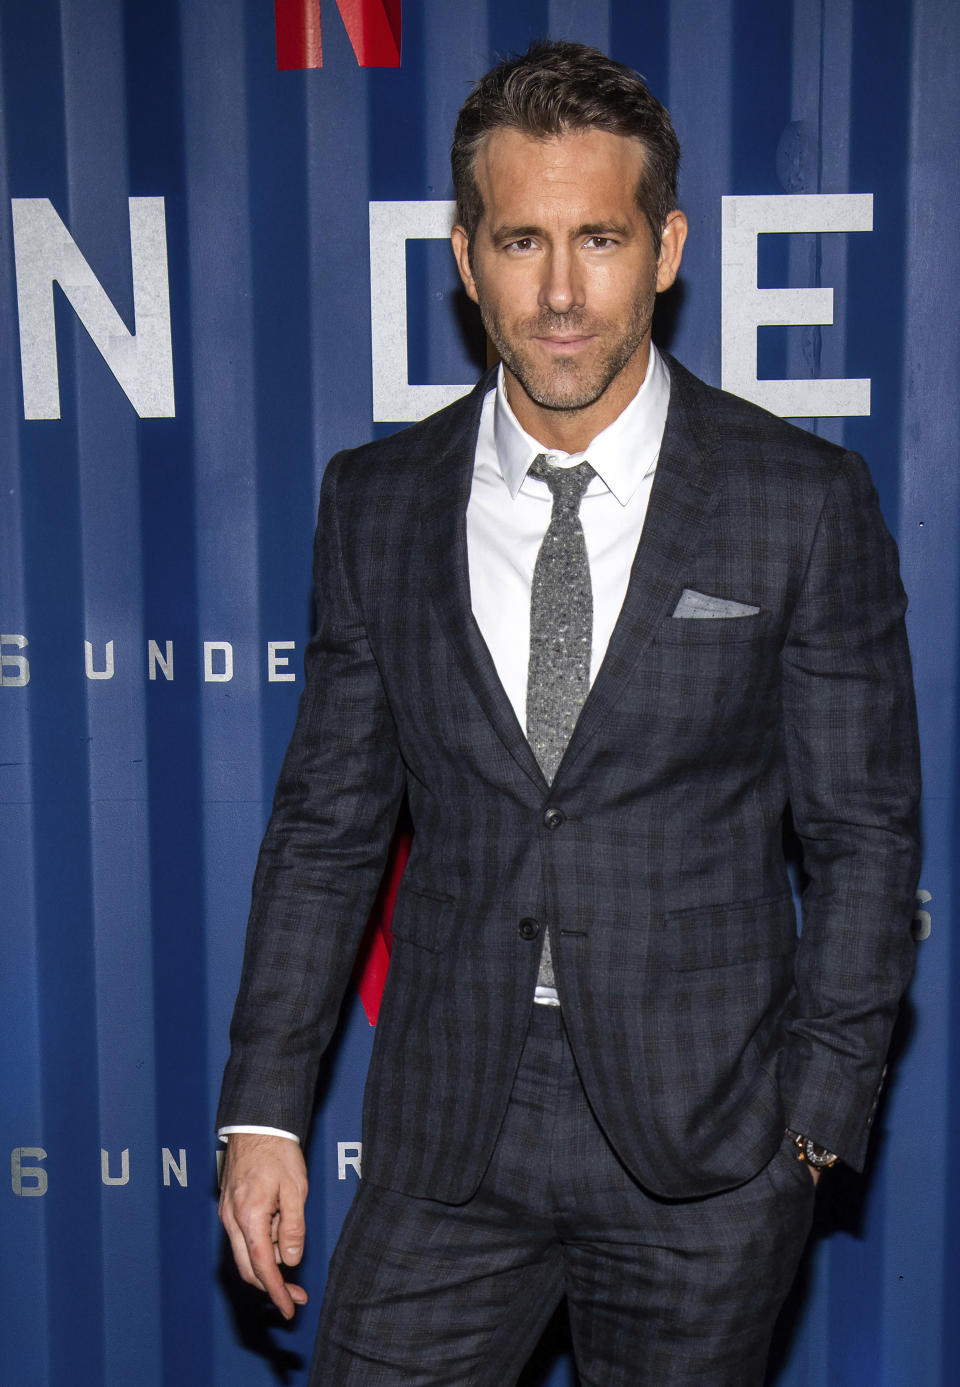 """FILE - Ryan Reynolds attends the premiere of Netflix's """"6 Underground"""" on Dec. 10, 2019, in New York. Reynolds turns 45 on Oct. 23. (Photo by Charles Sykes/Invision/AP, File)"""